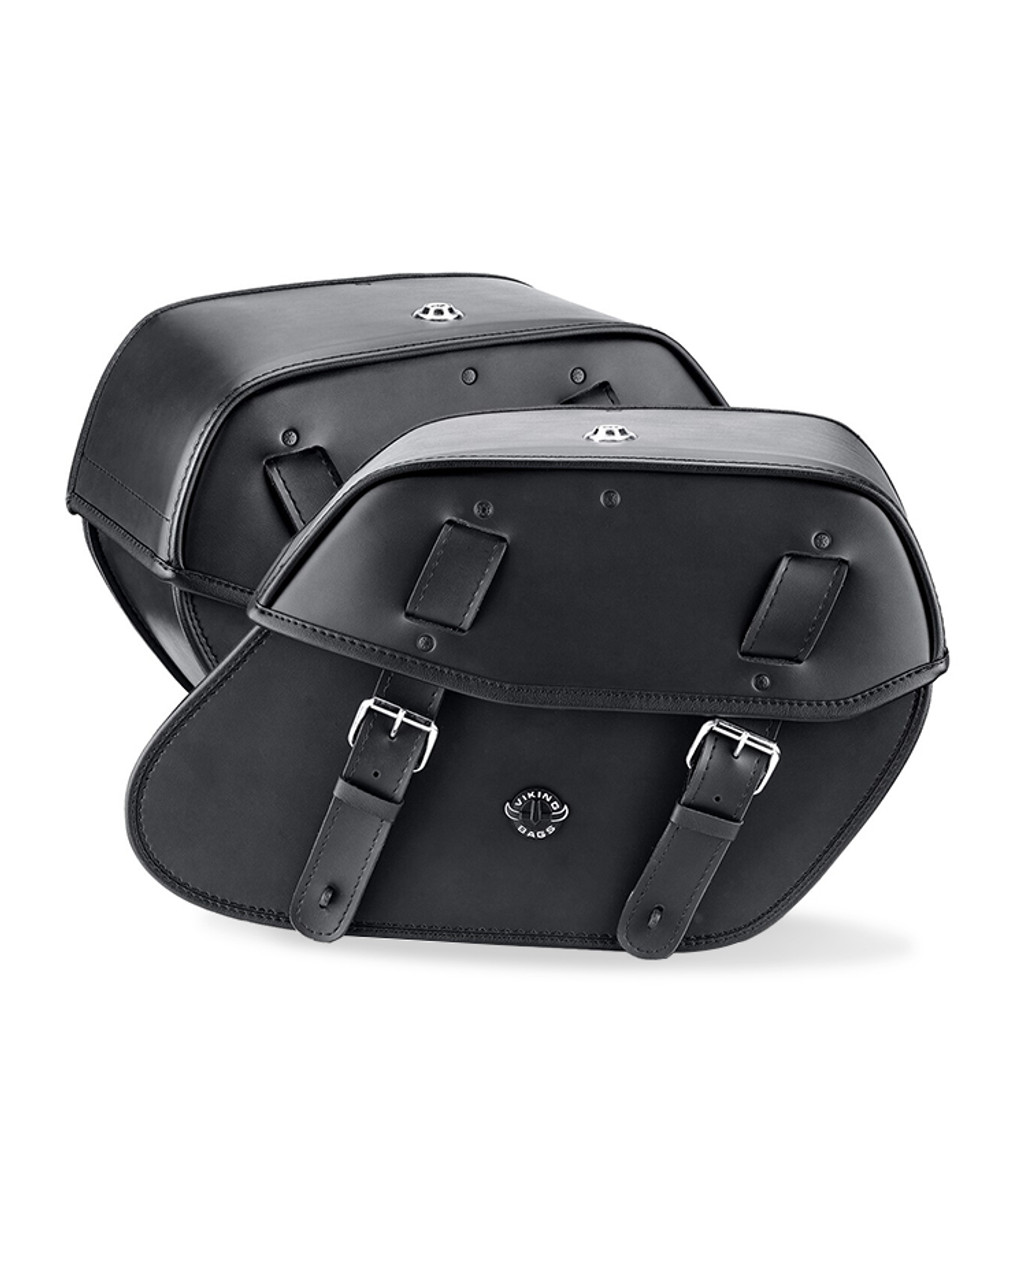 Viking Odin Large Motorcycle Saddlebags For Harley Softail Night Train FXSTB Both Bags View